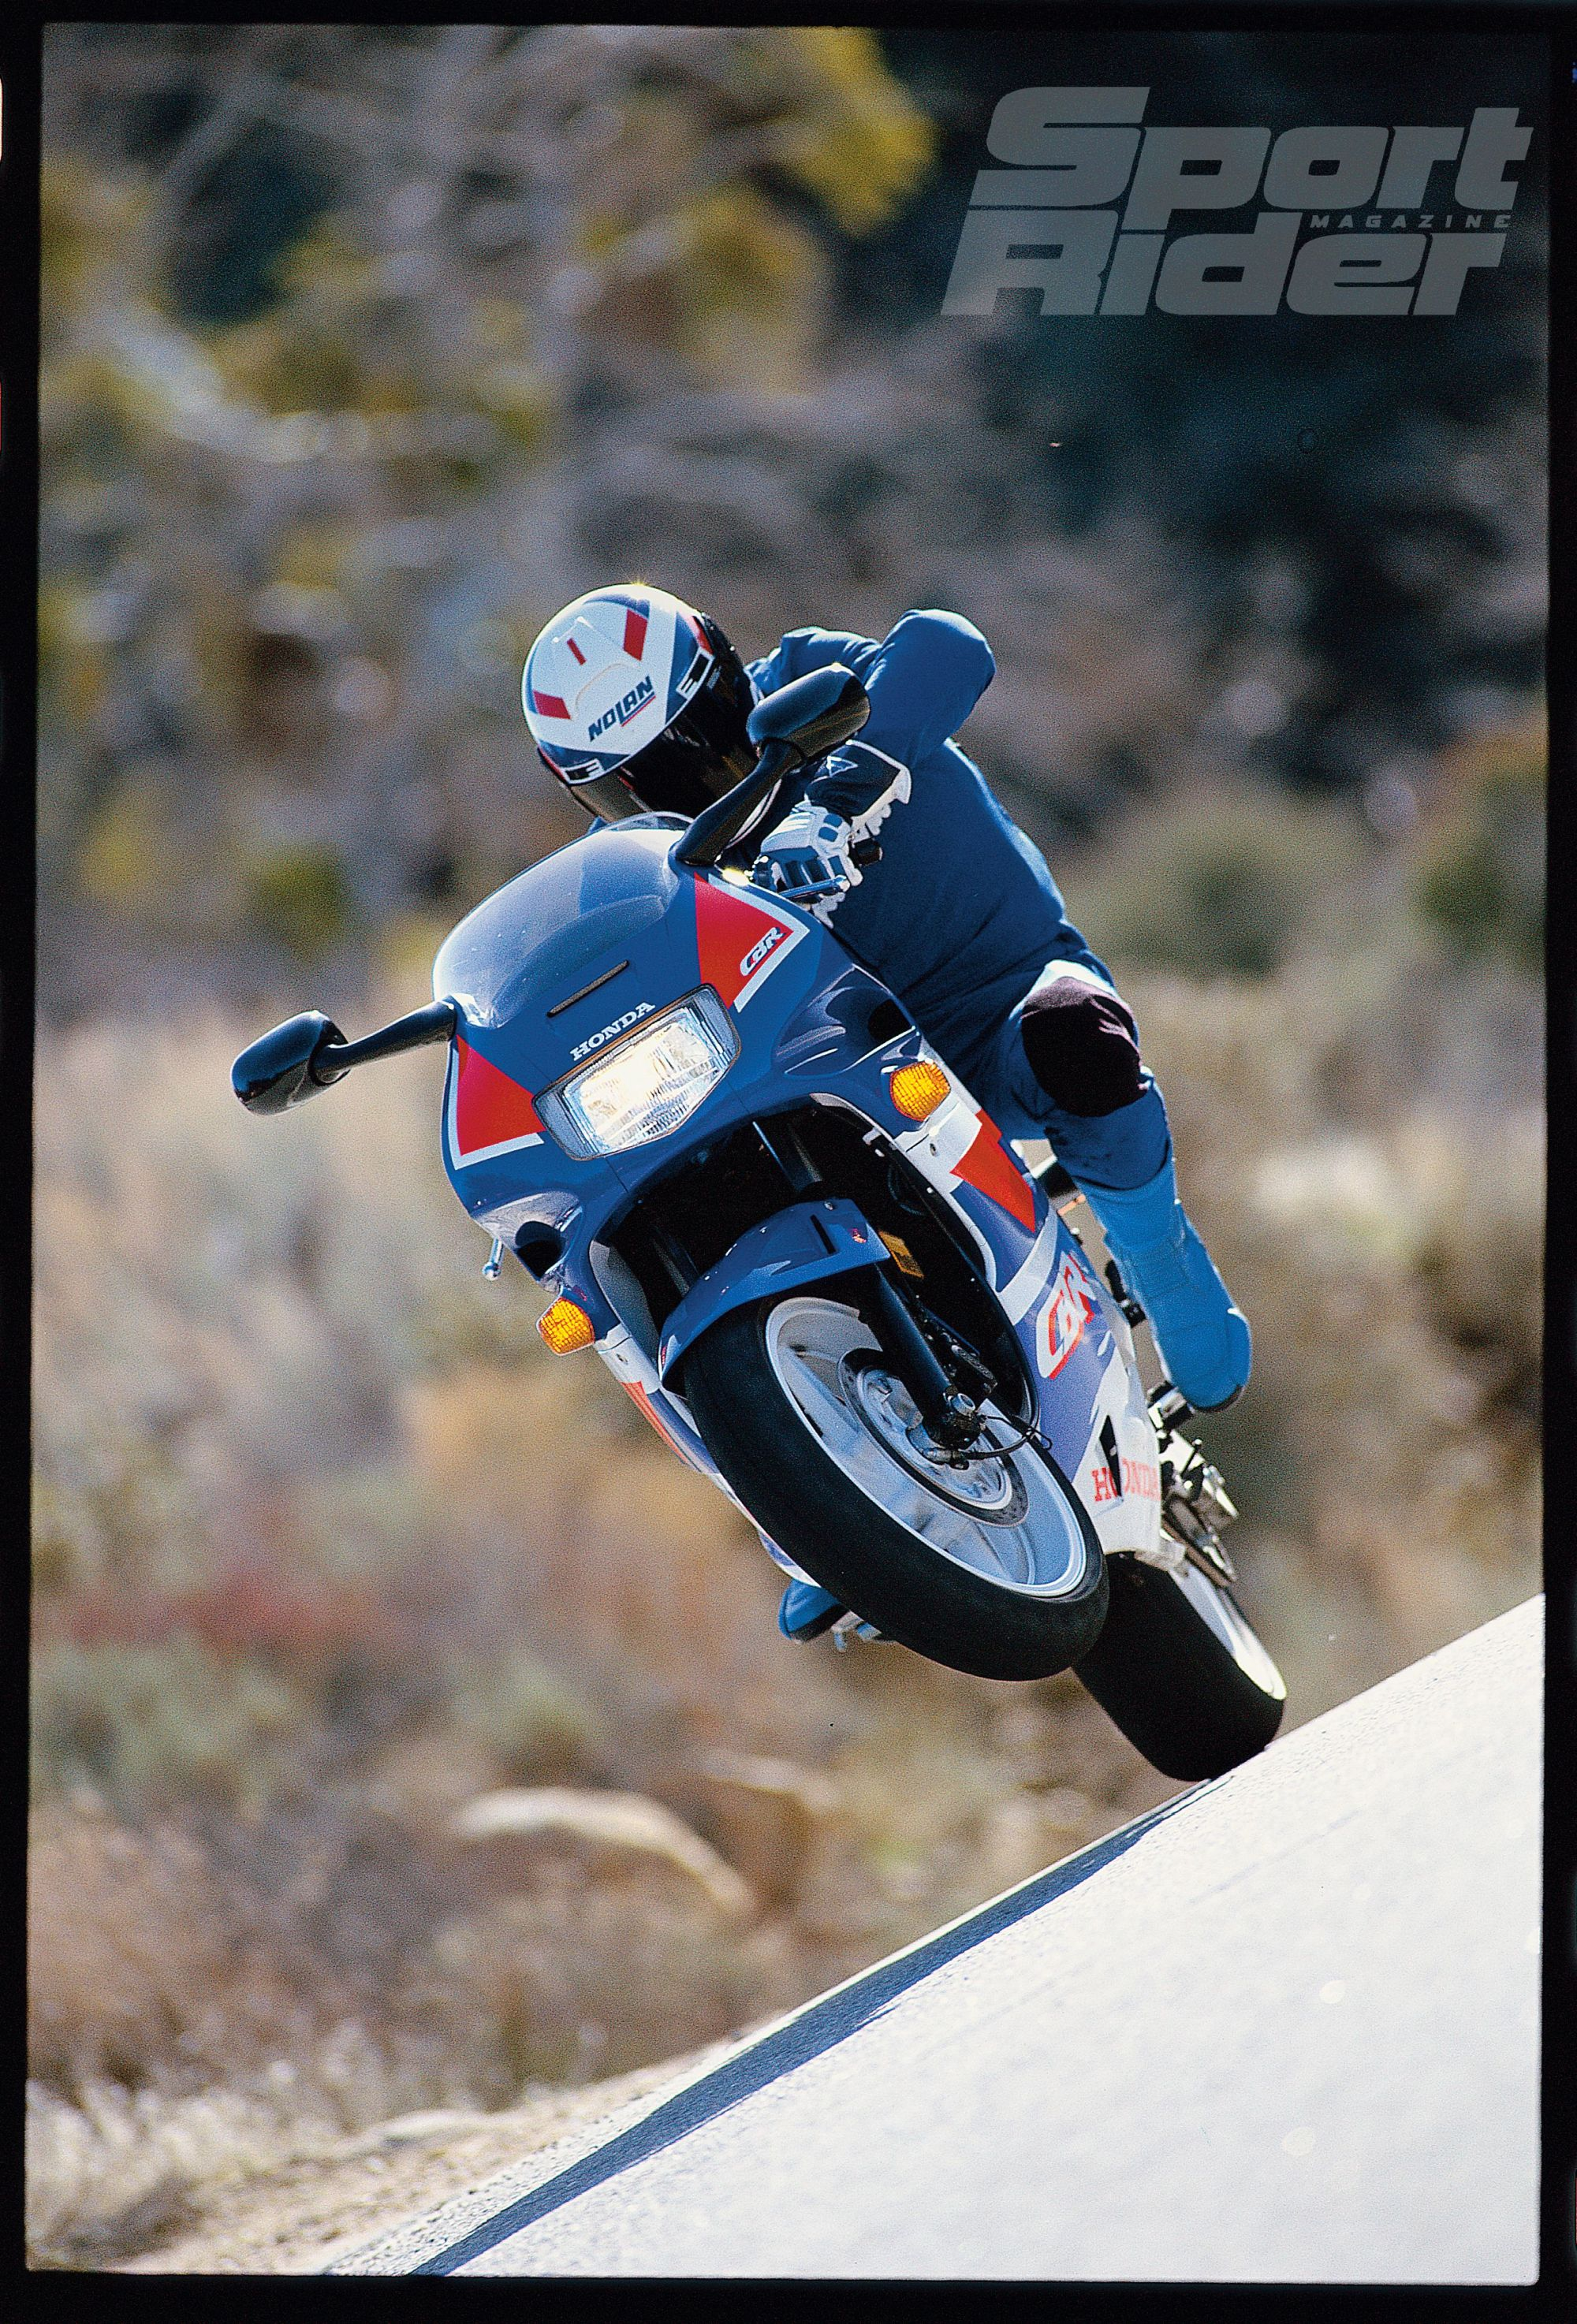 hight resolution of great sportbikes of the past 1991 1998 honda cbr600f2 f3 the birth of domination cycle world